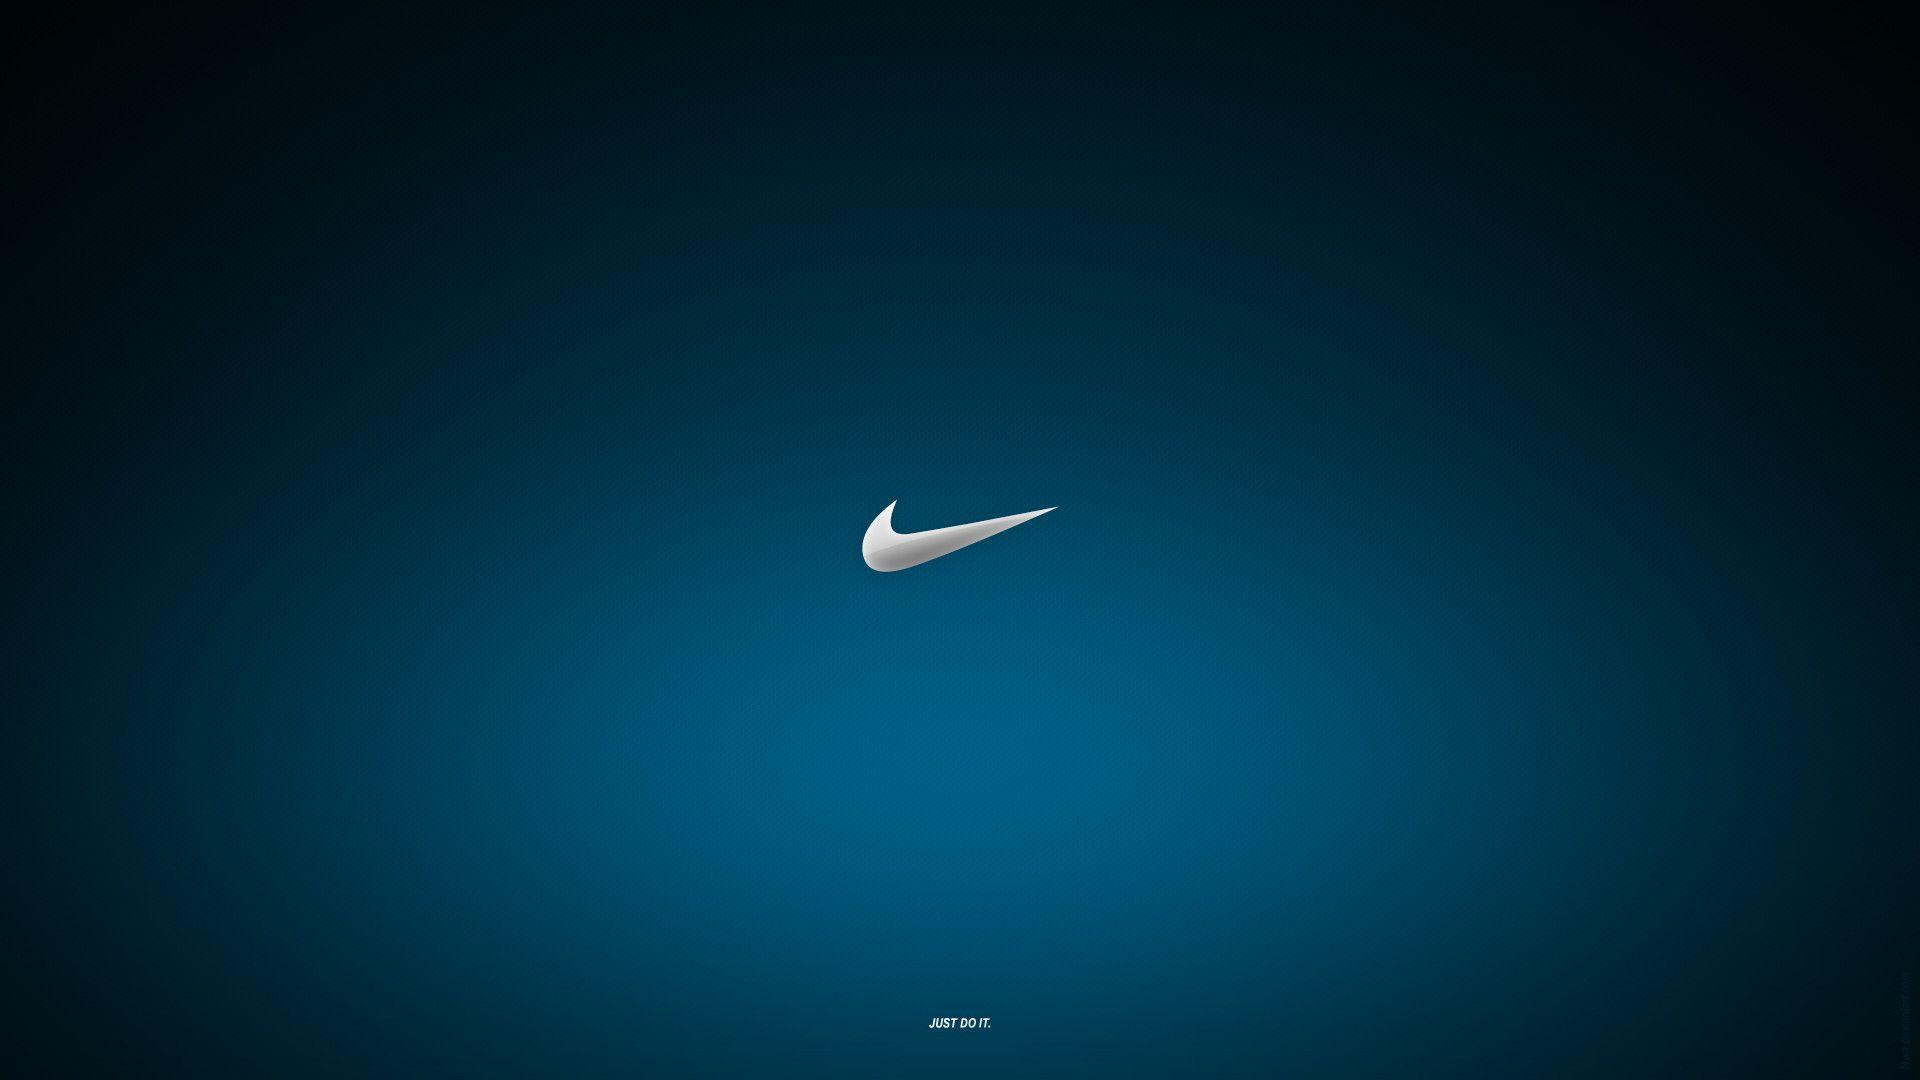 nike wallpapers for laptop wallpaper cave